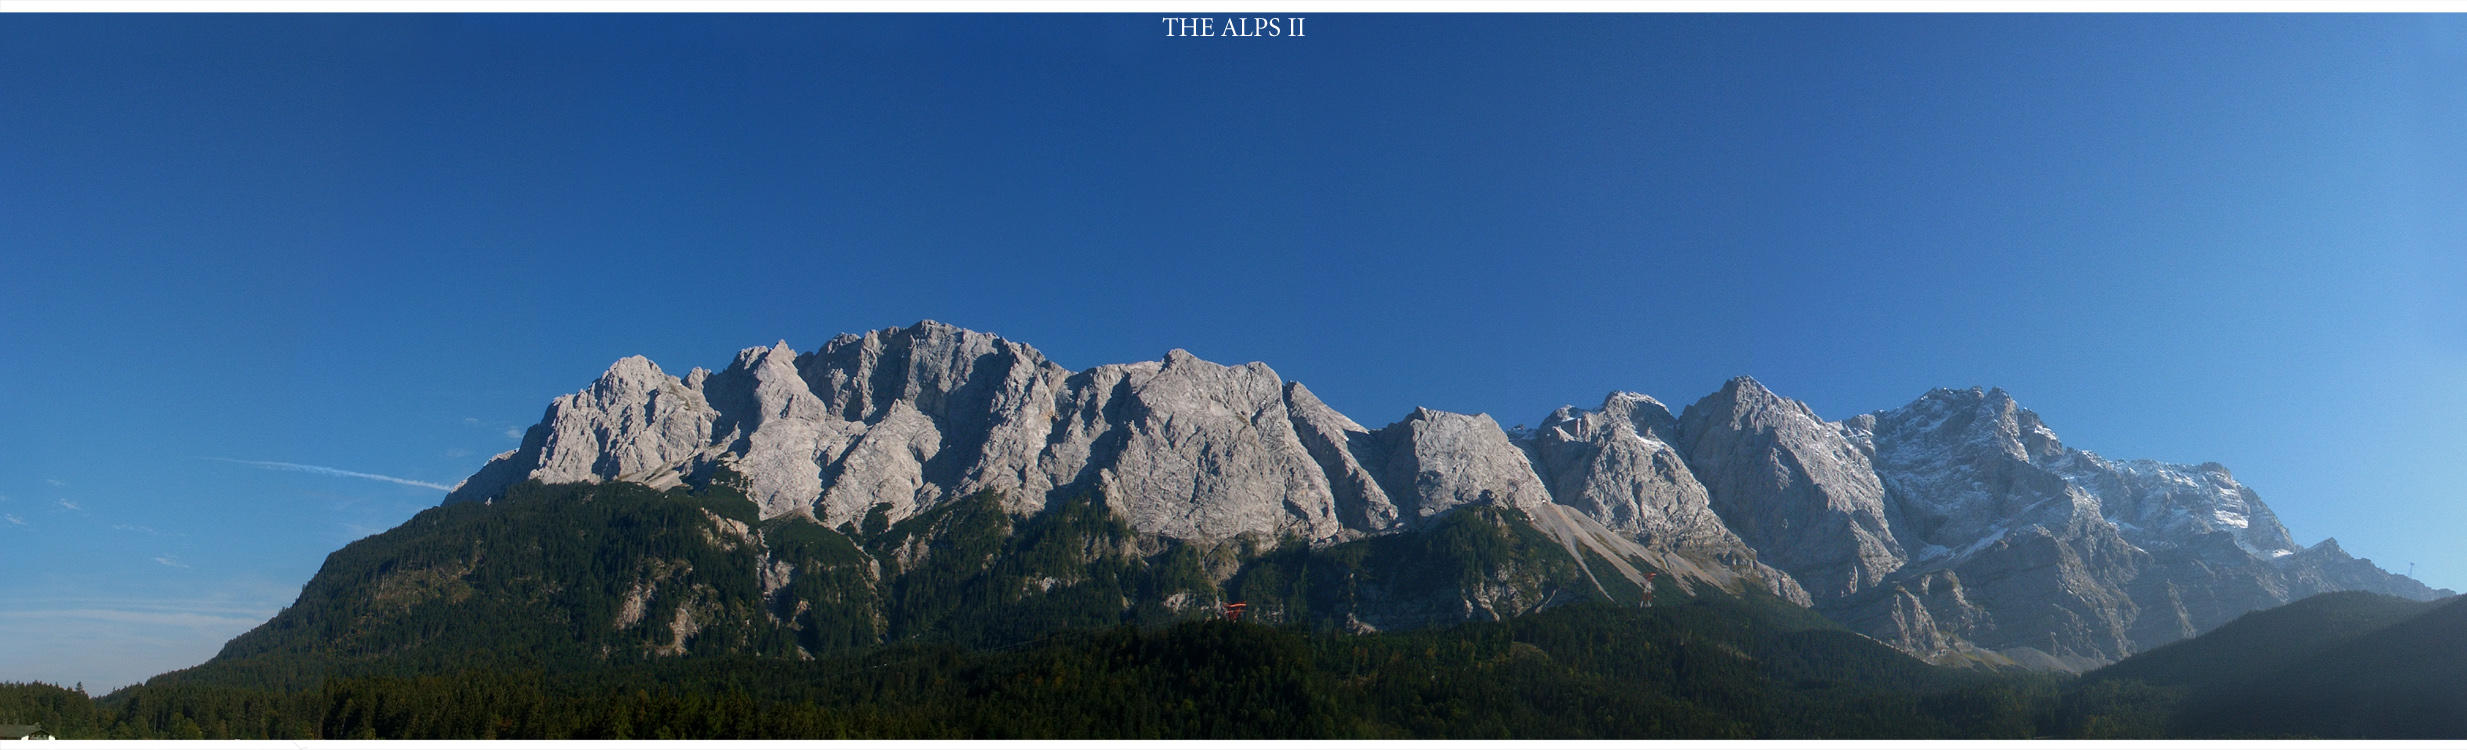 Photo - Panorama - The Alps II by tigaer